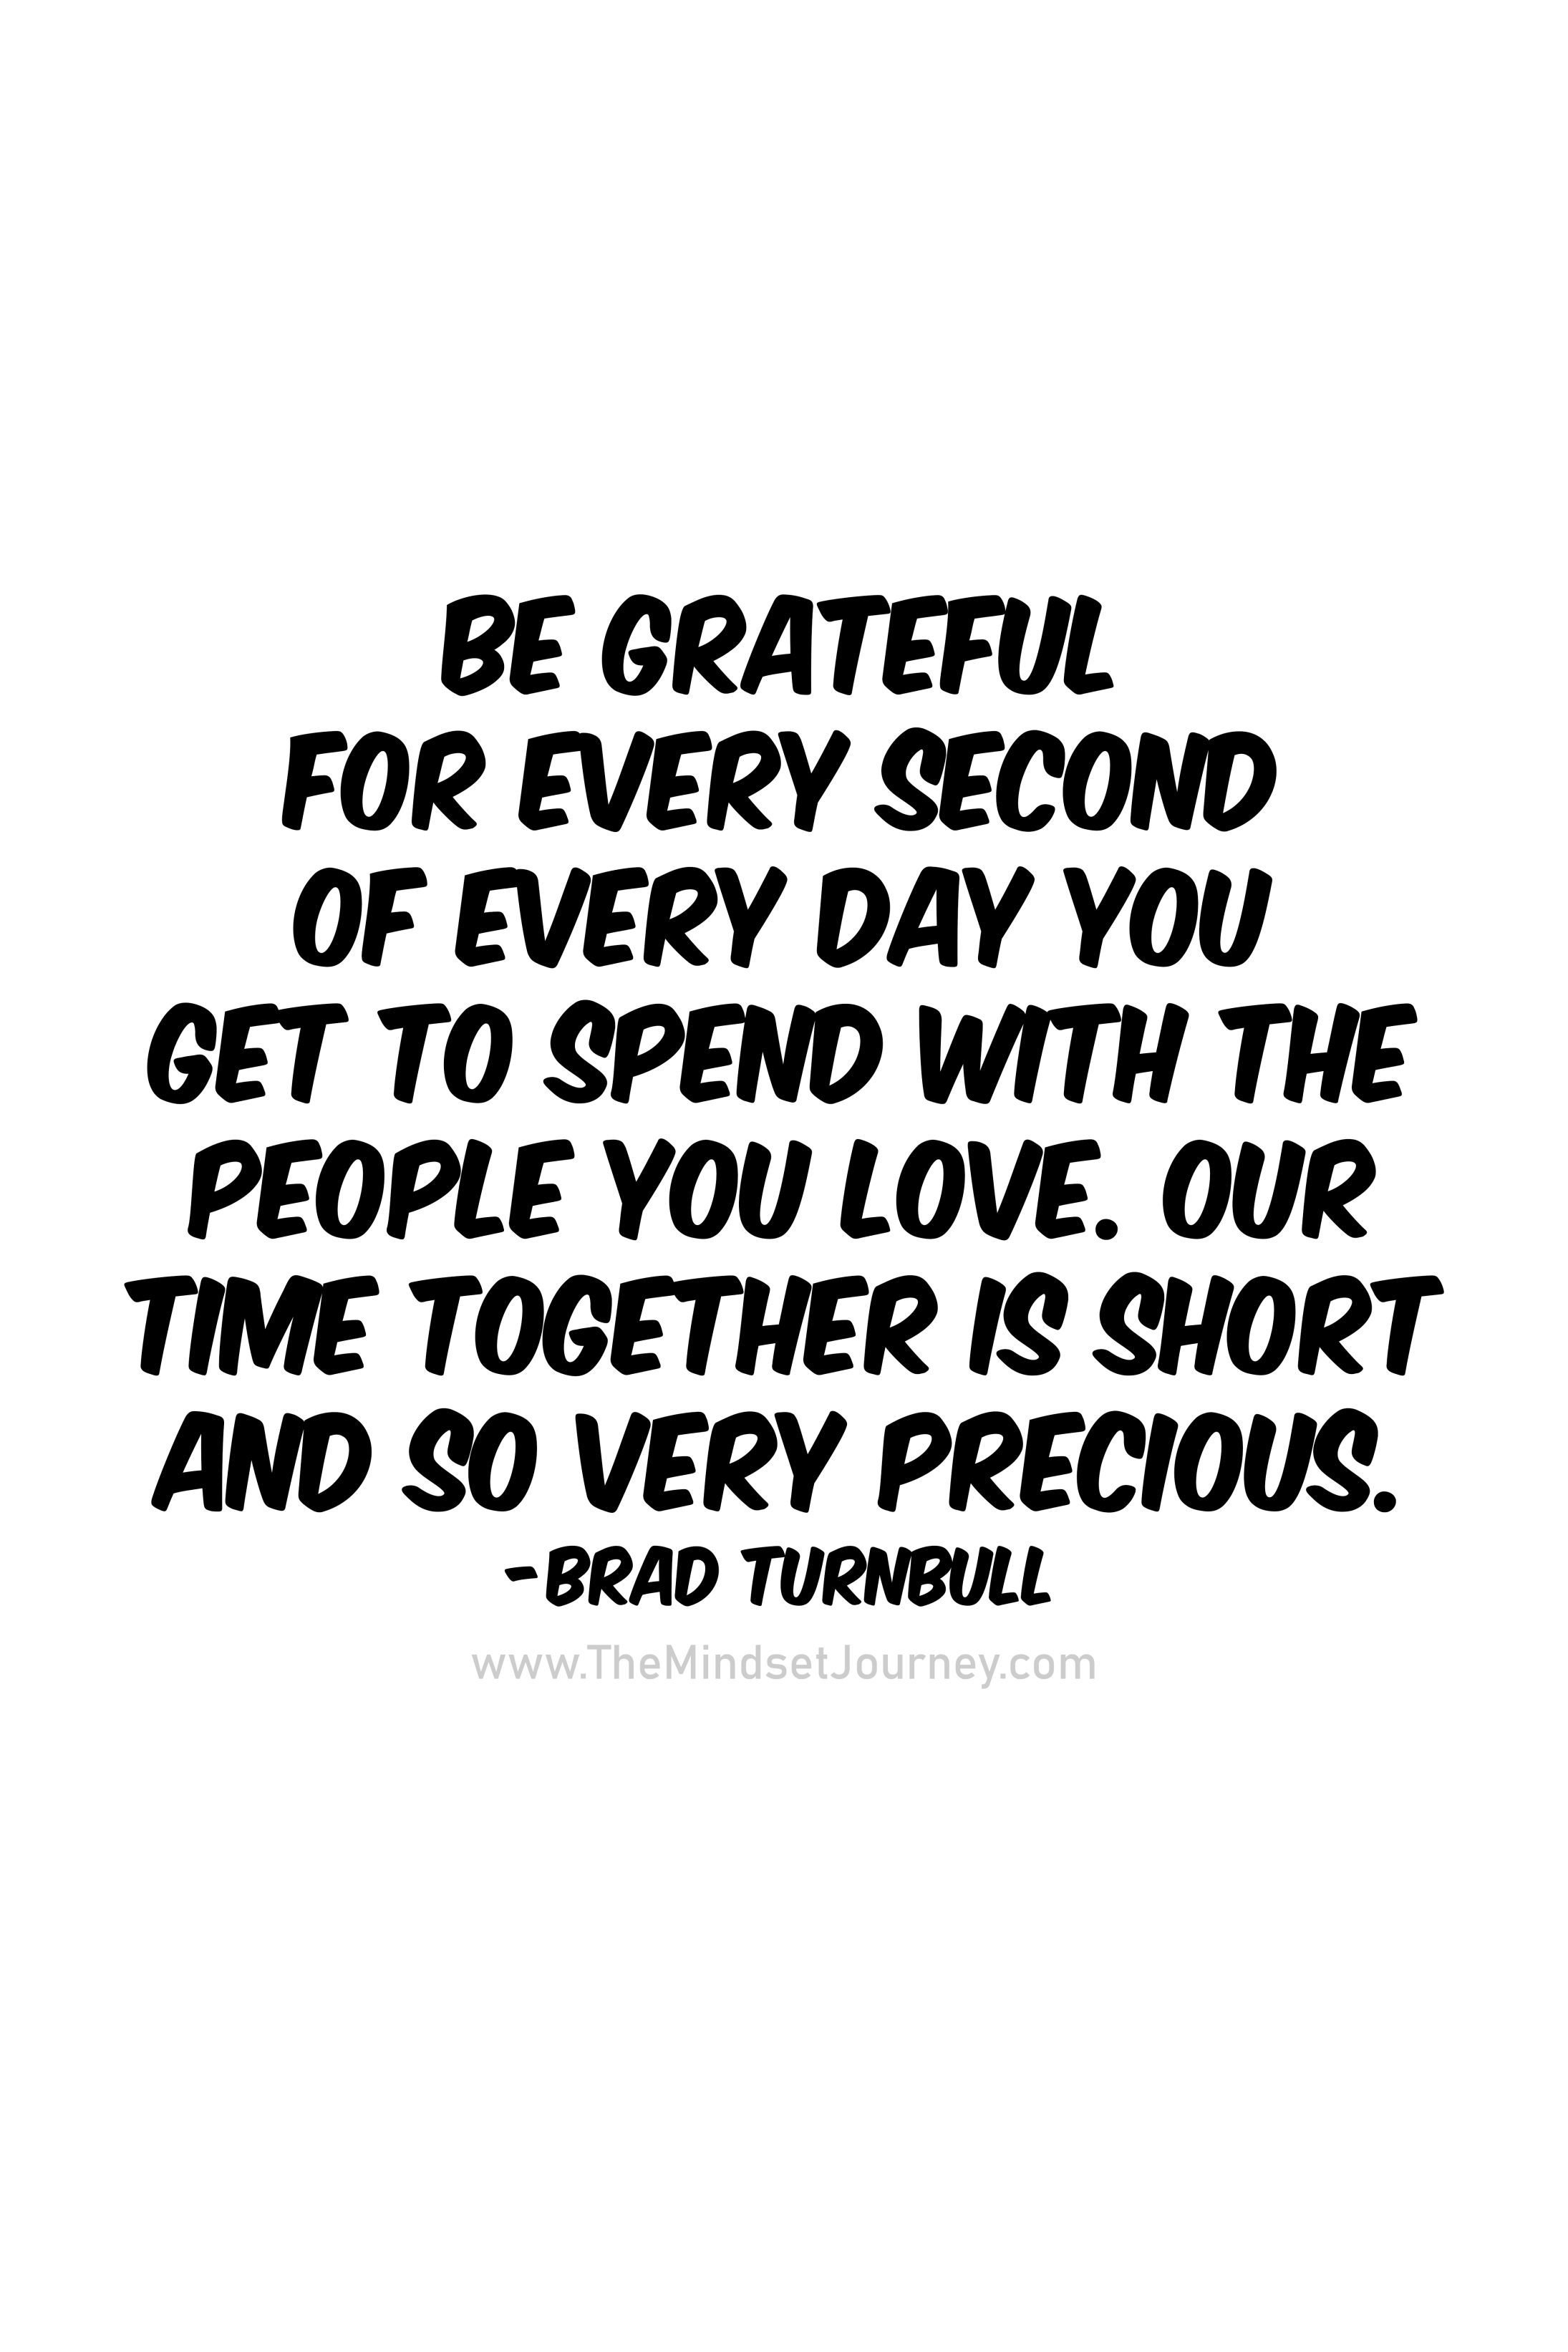 Be Grateful For Every Second Of Every Day You Get To Spend With The People You Love The Mindset Journey Grateful Quotes Family Day Quotes Together Quotes